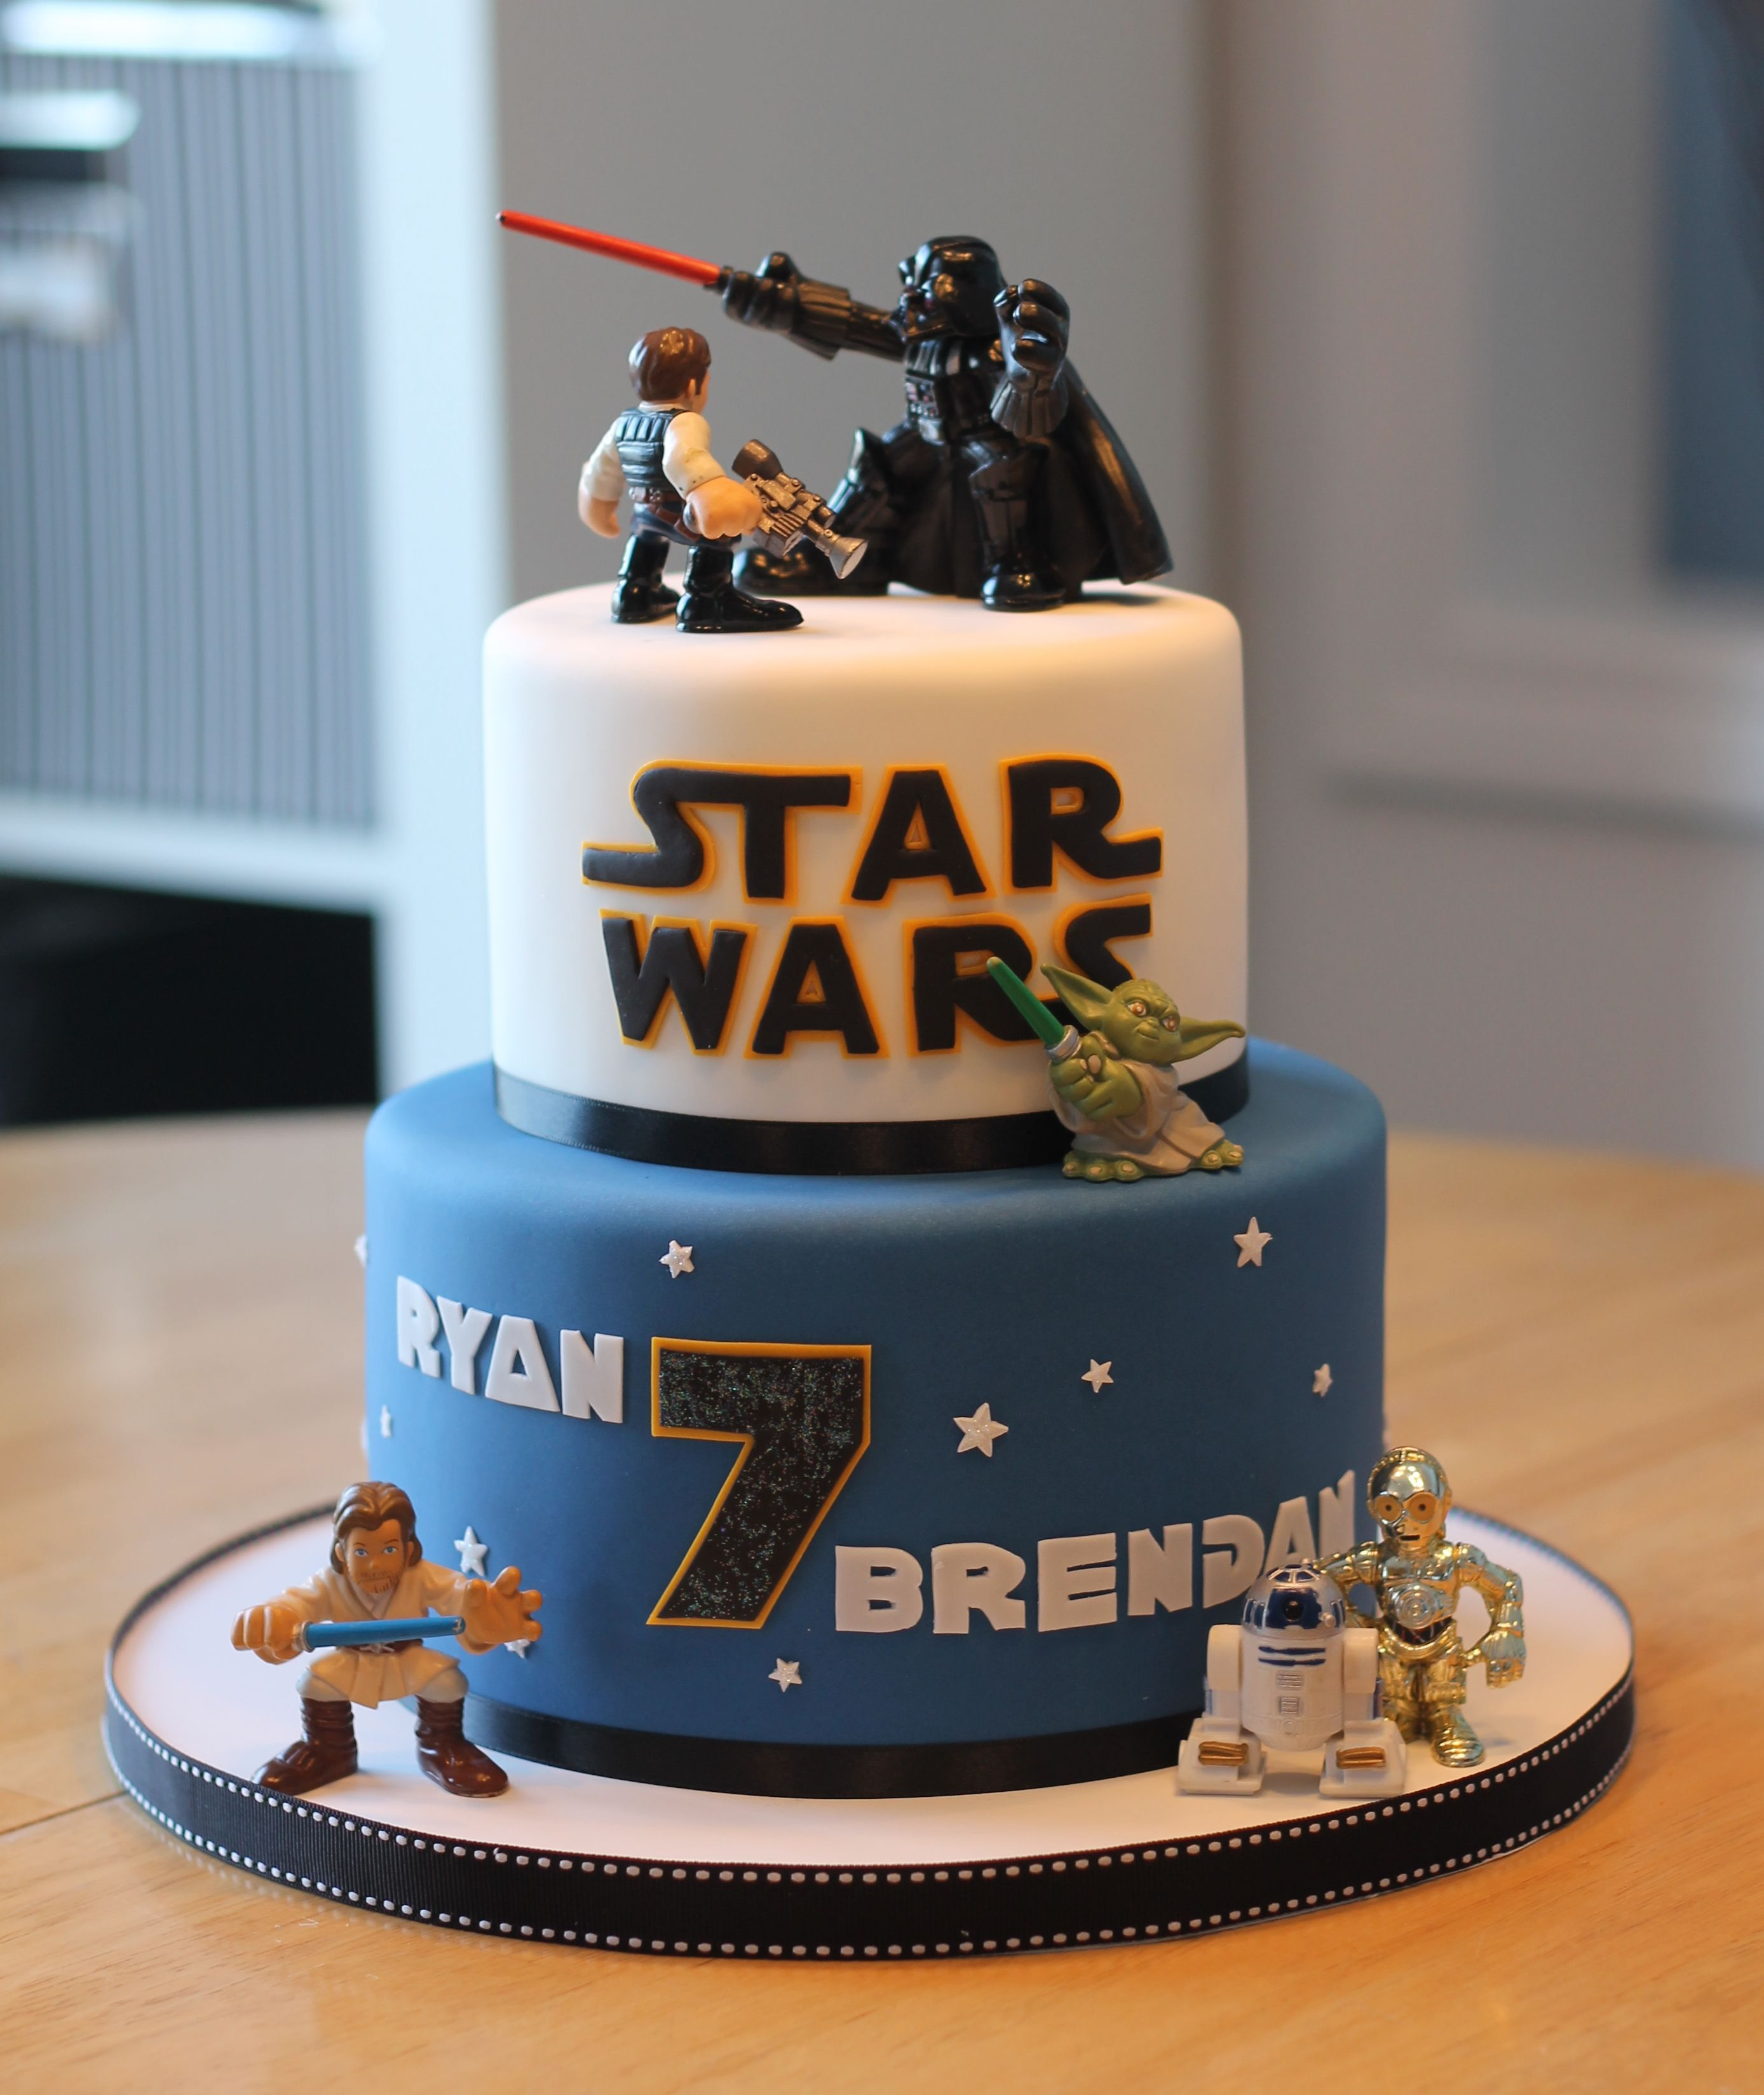 Two Tier Star Wars Themed Birthday Cake For Twins Ryan Brendan Turning 7 This Year Cake Is Decorated With H Star Wars Birthday Cake War Cake Star Wars Cake